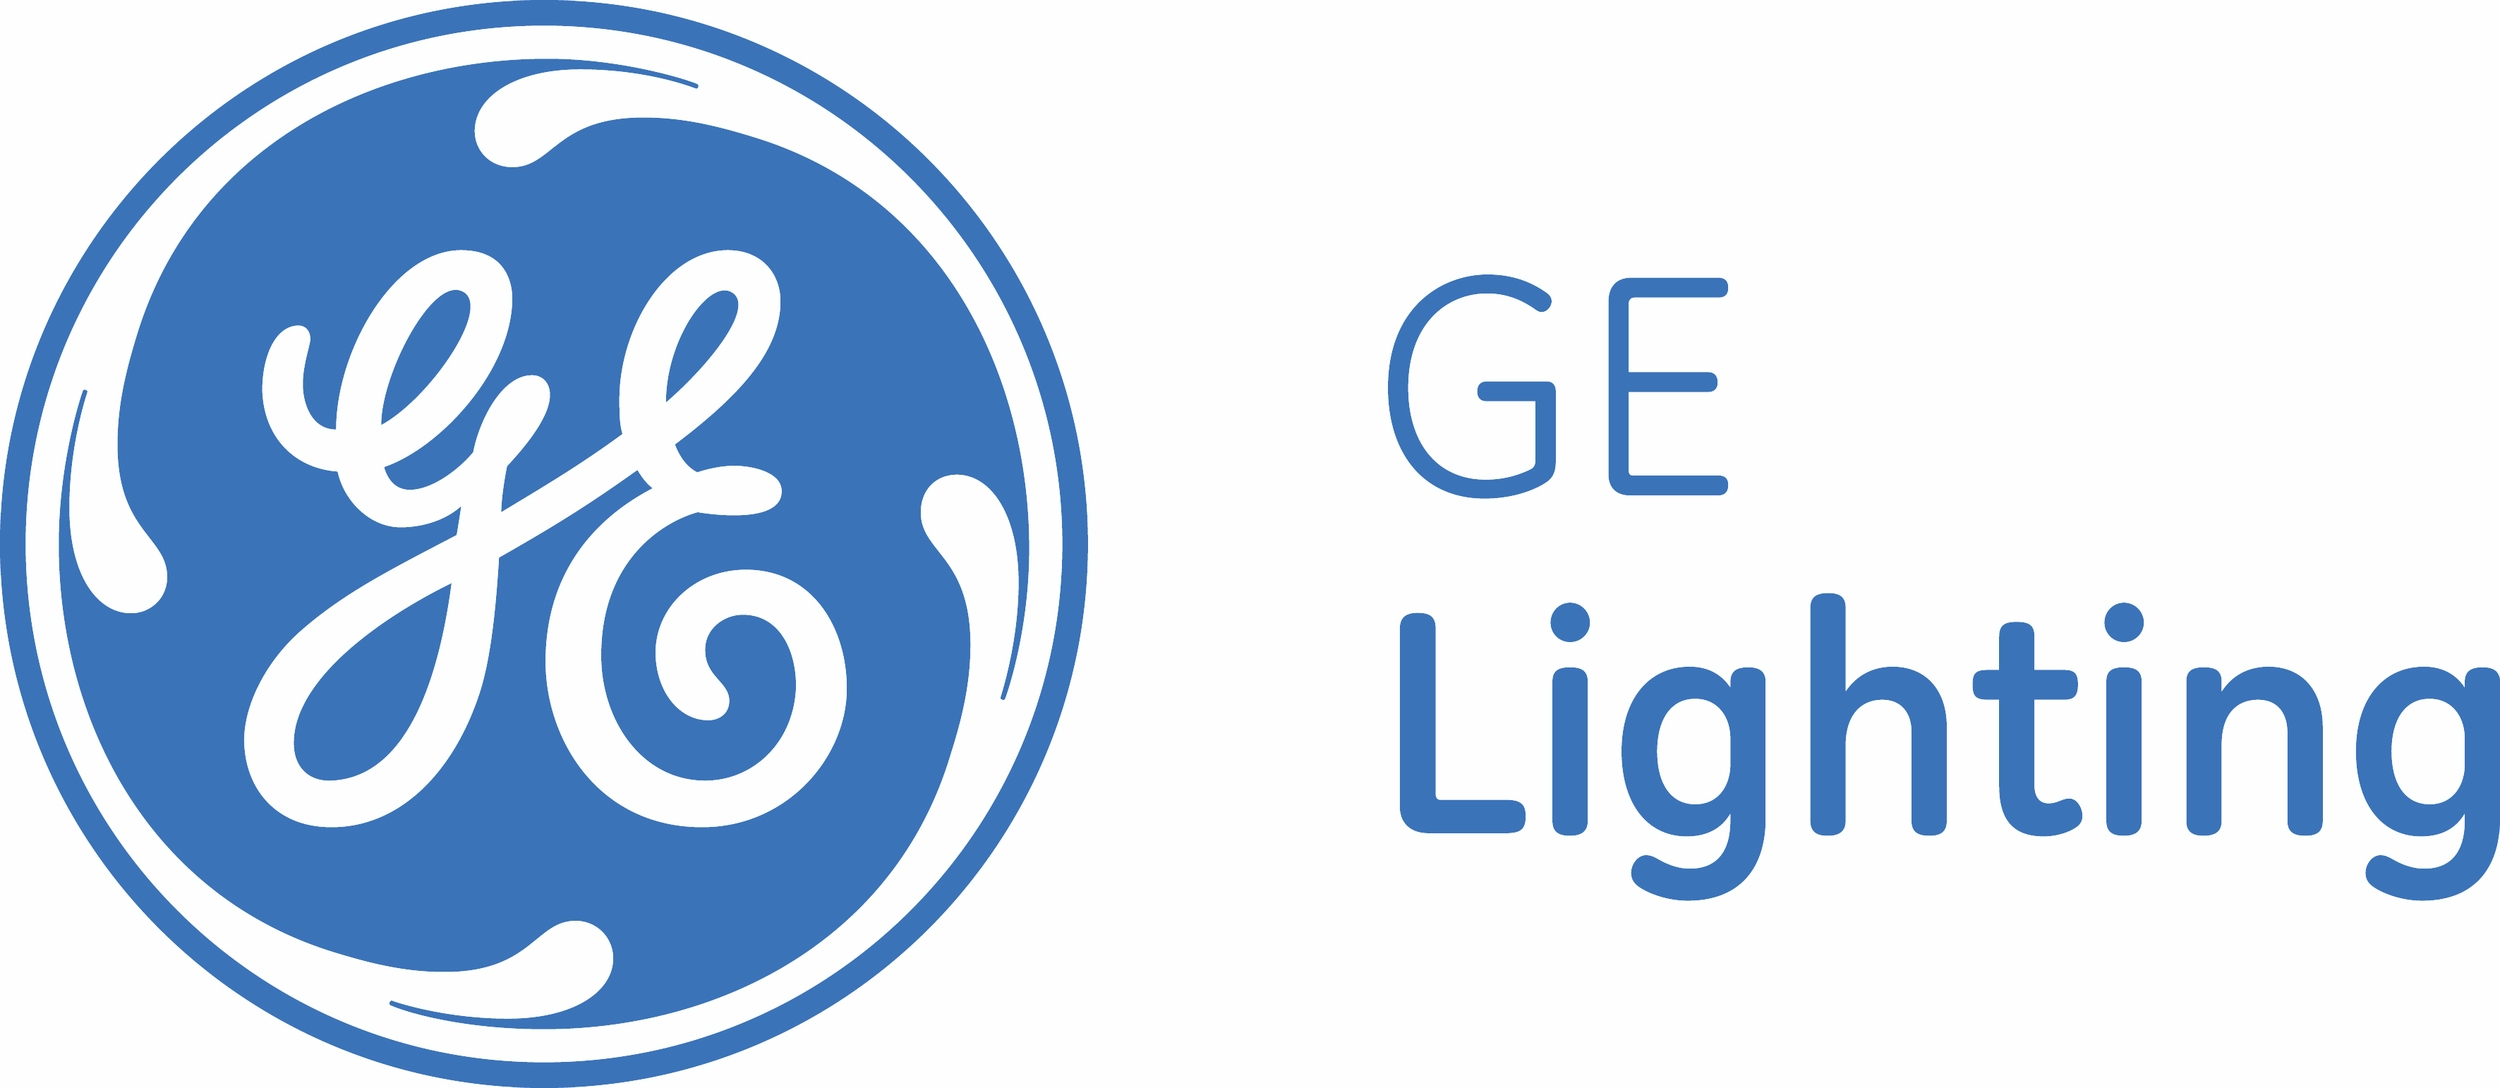 GE LED Lamps